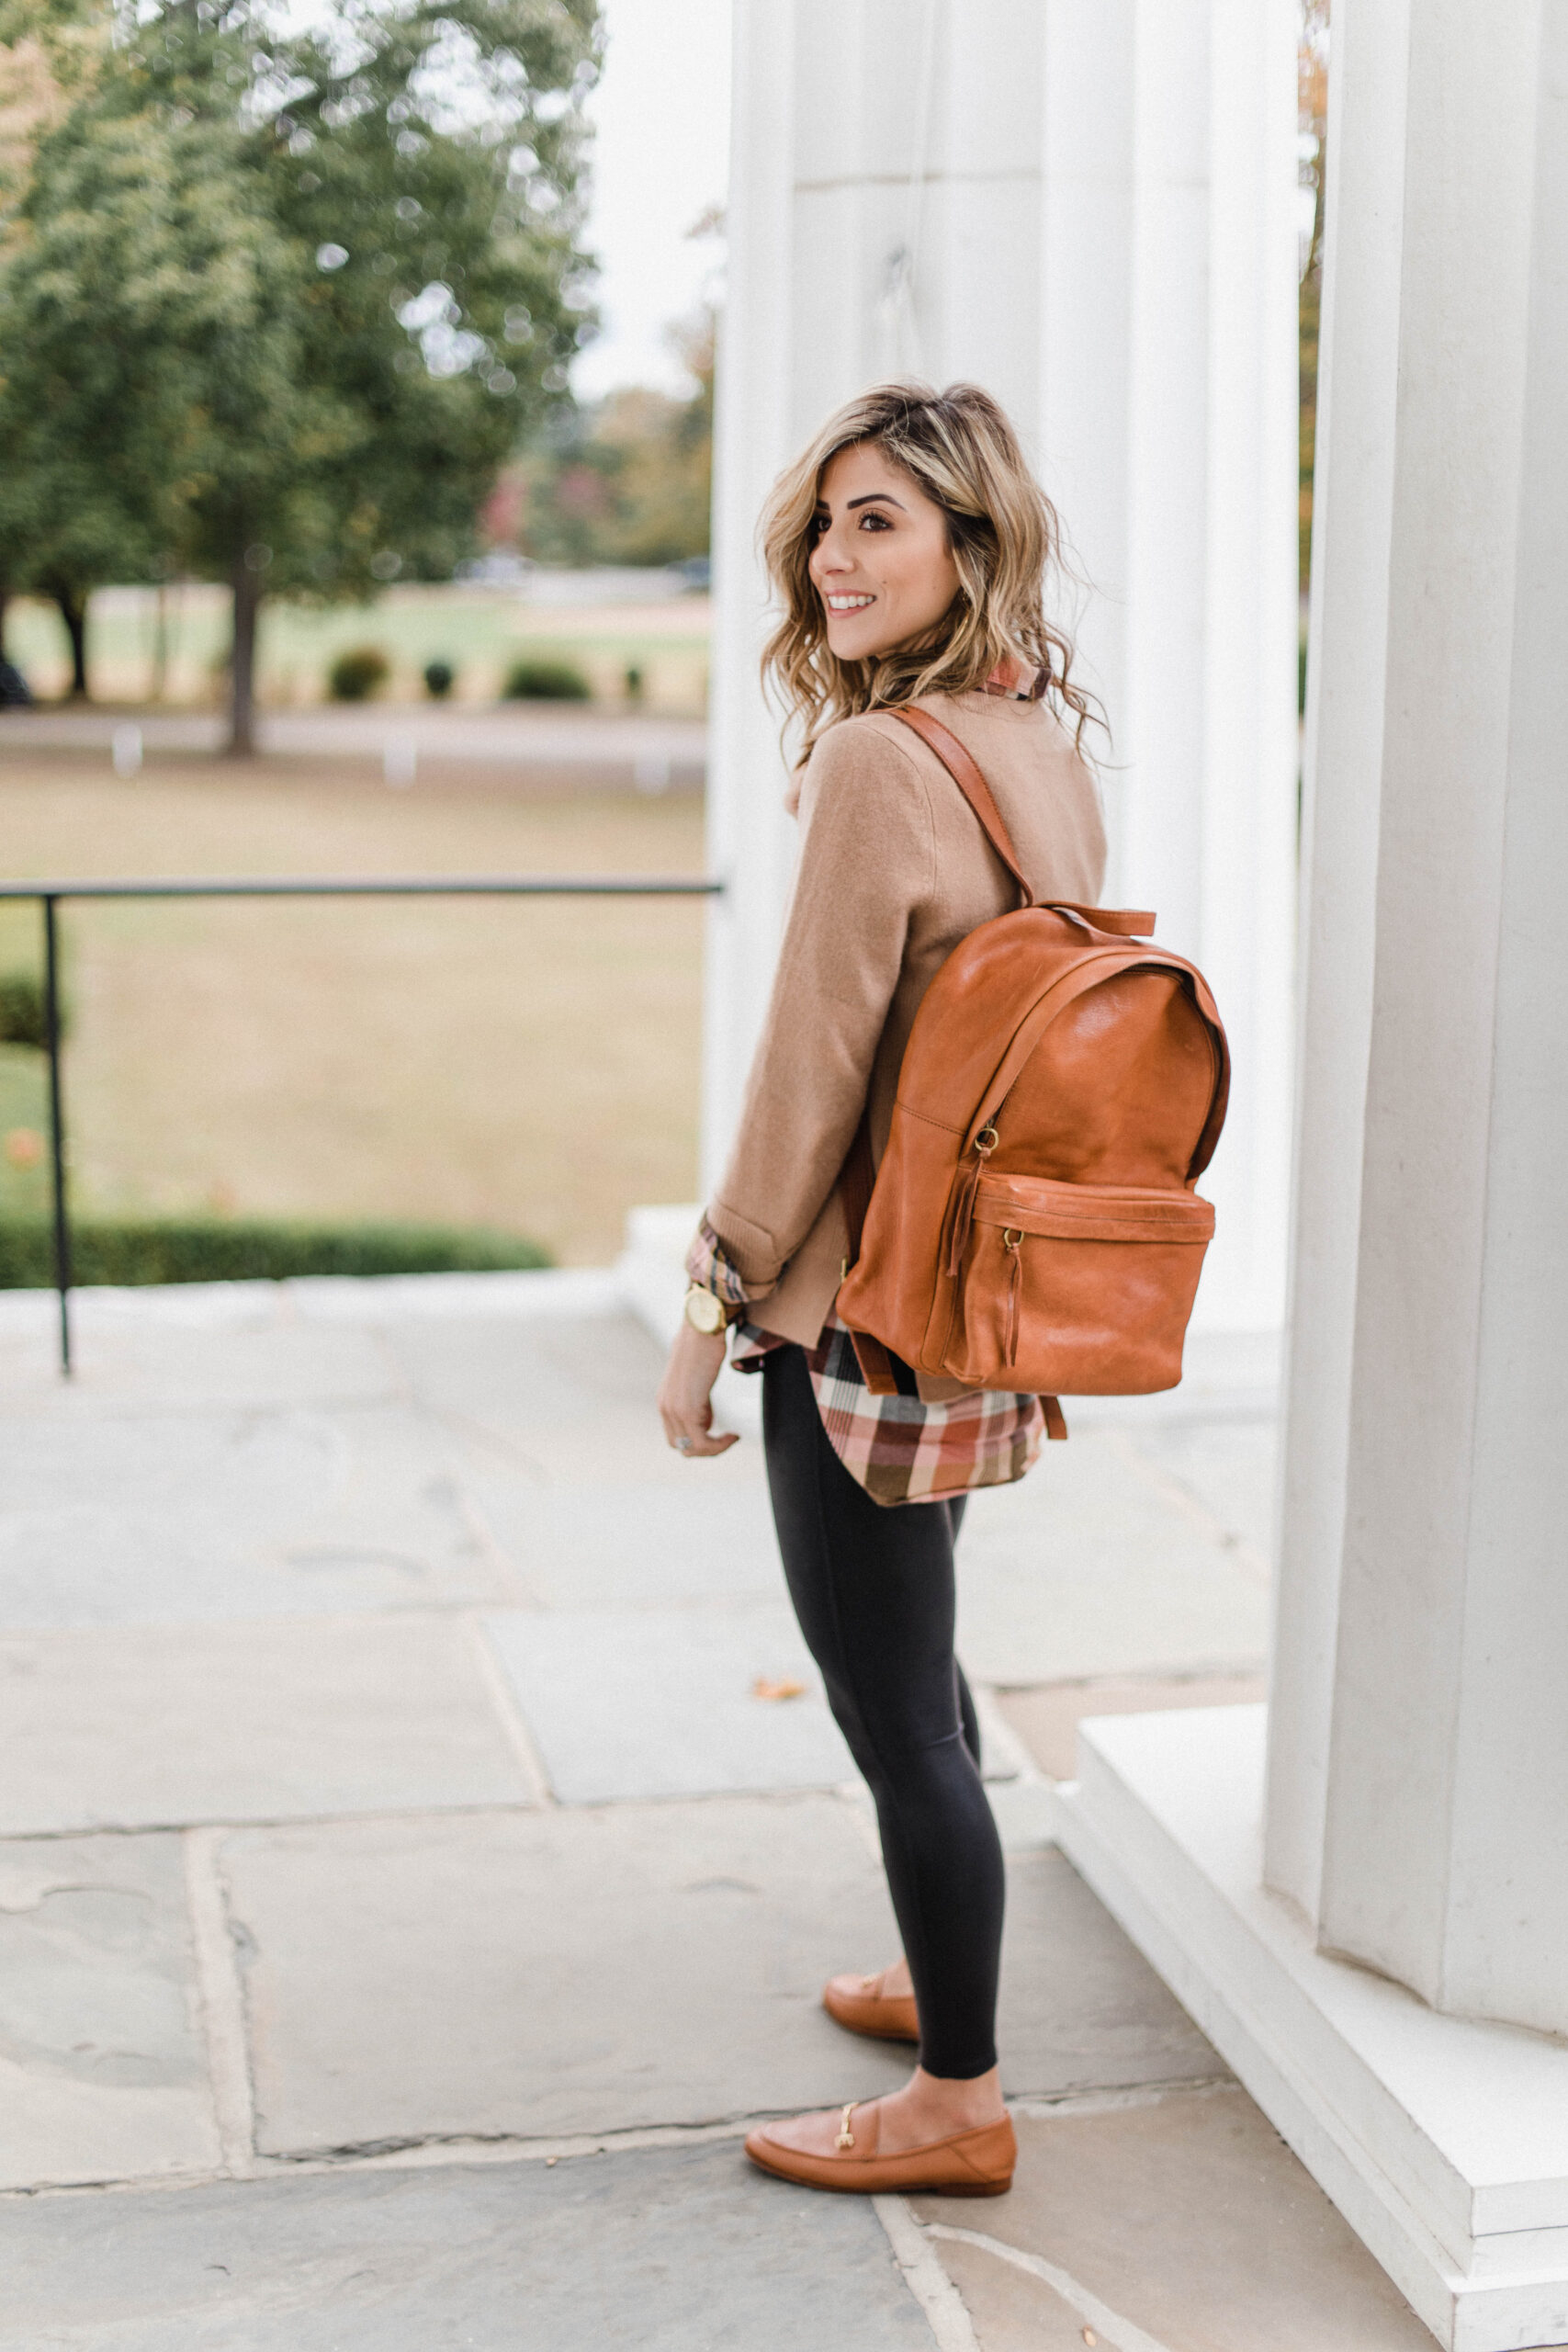 Connecticut life and style blogger Lauren McBride shares her ShopBop Fall Event picks, including classic wardrobe staples.